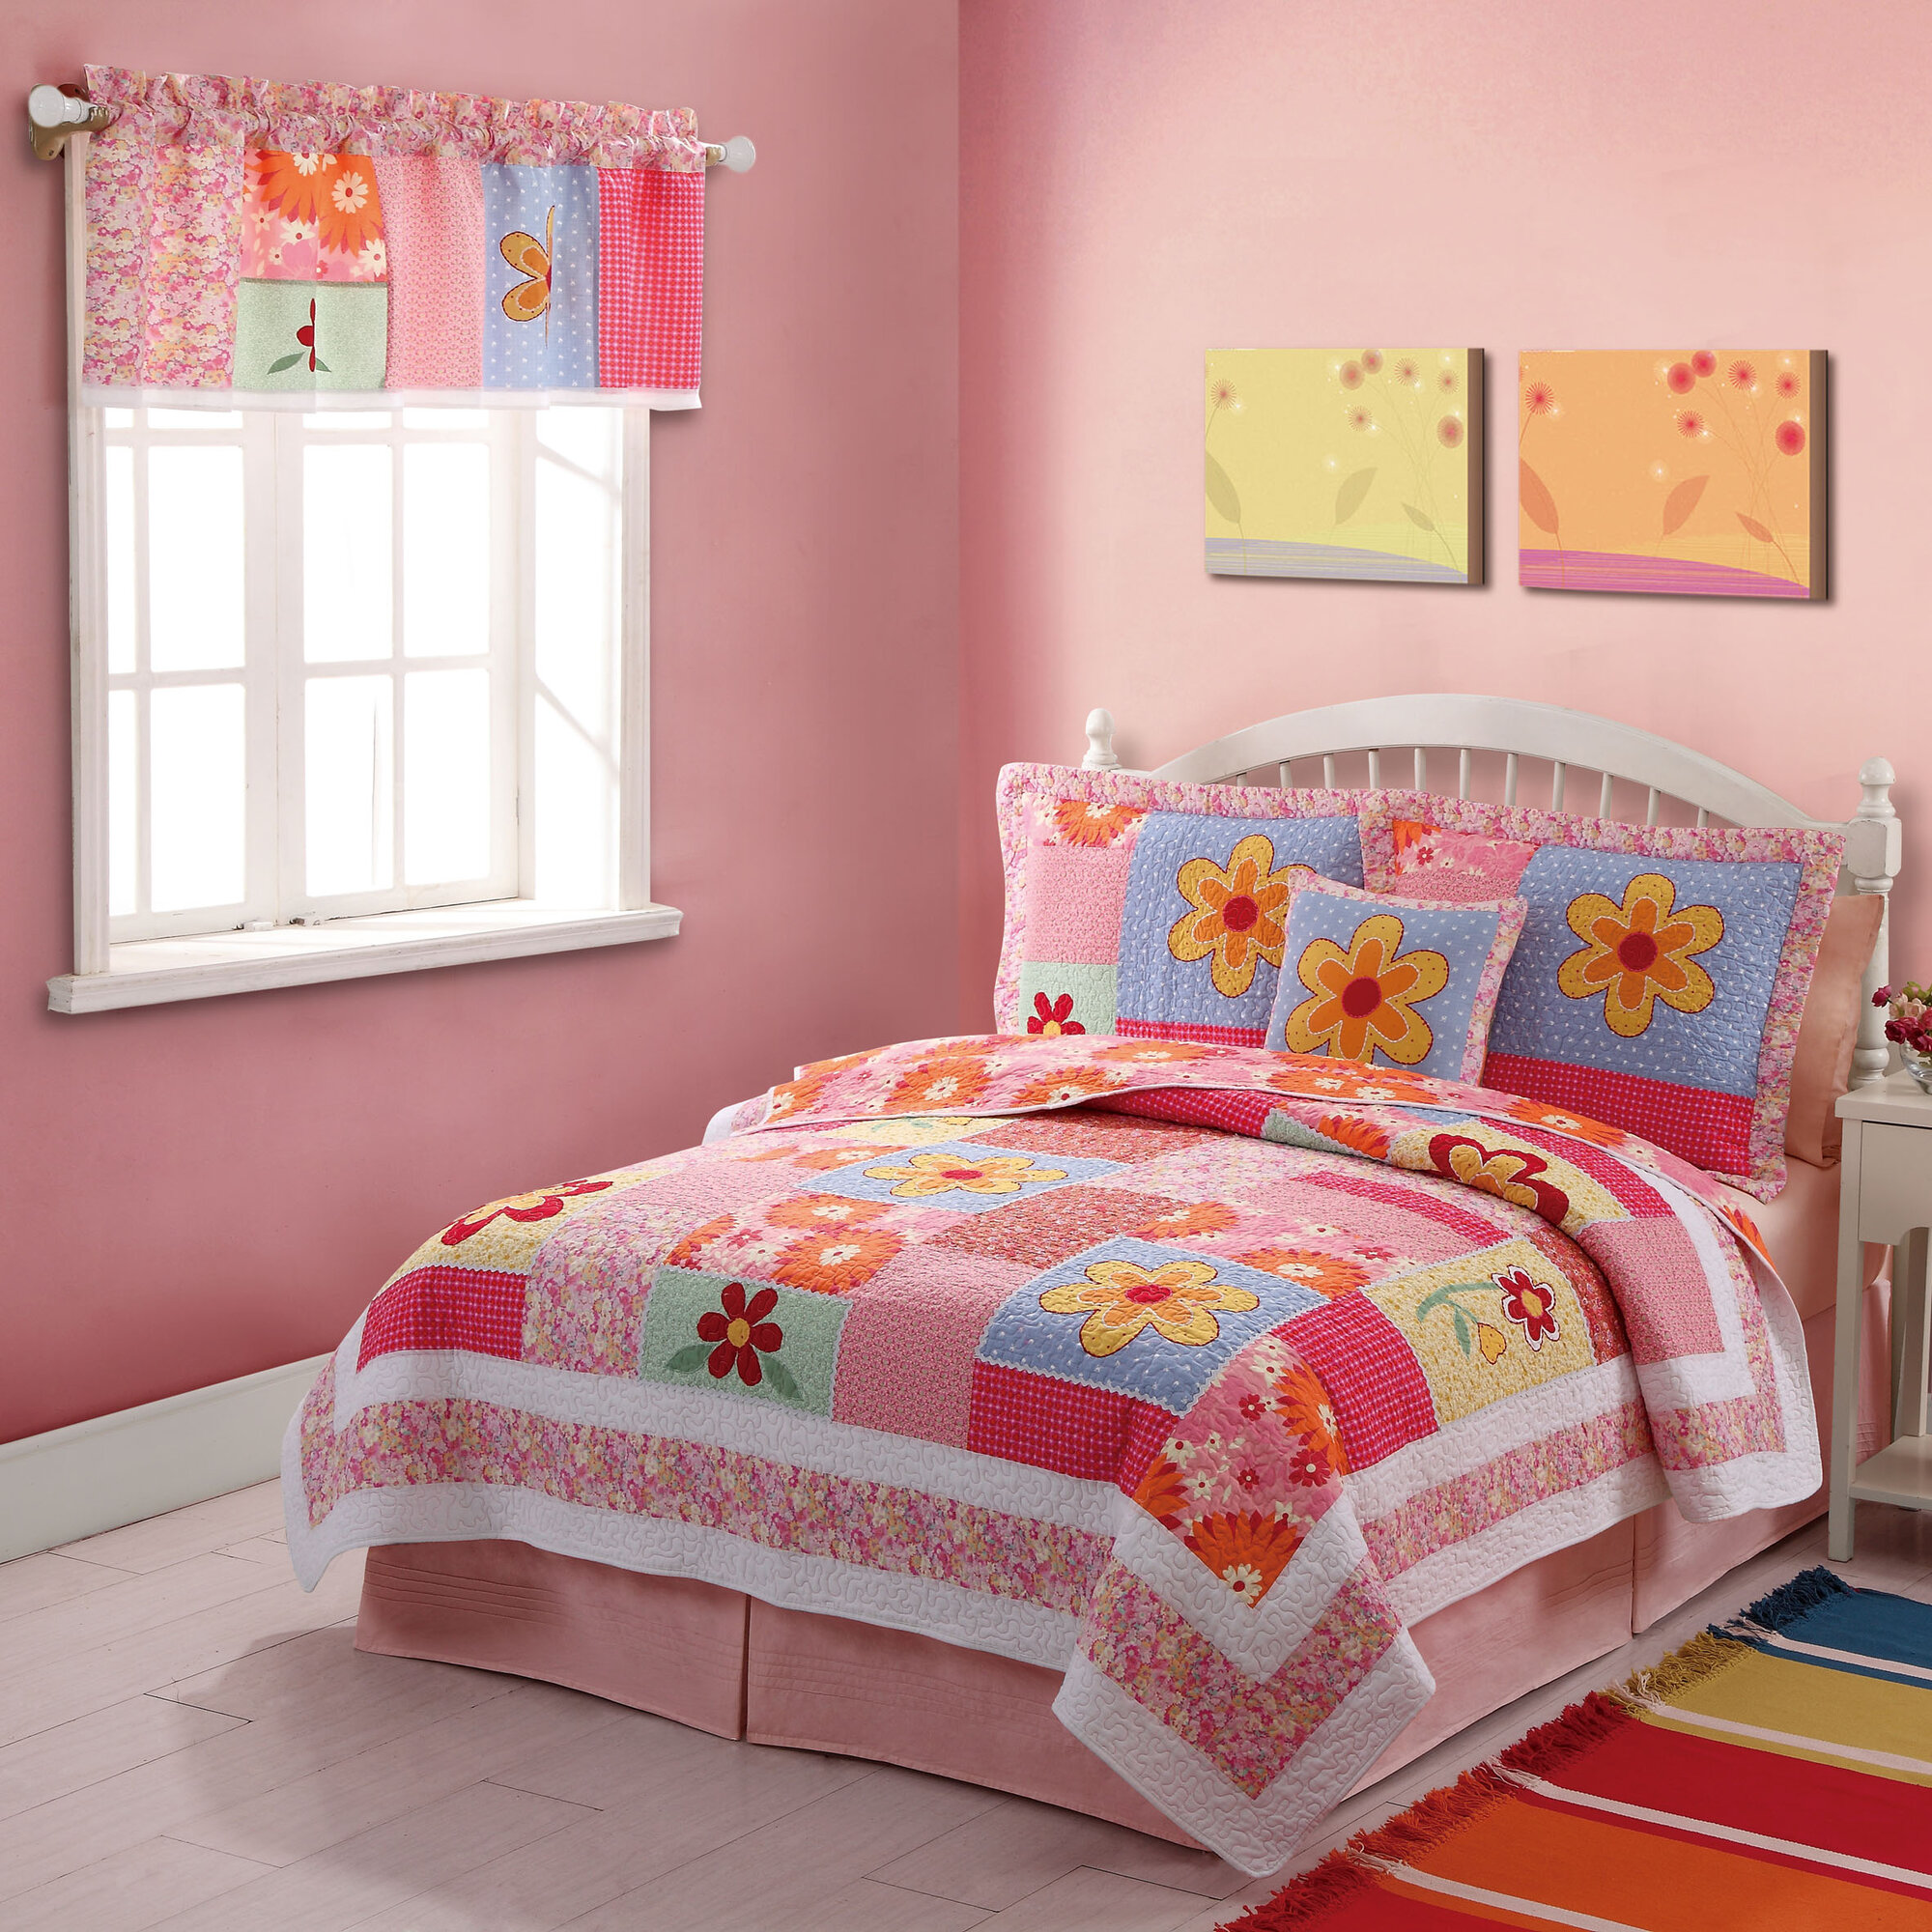 pink orange floral quilt bedding set